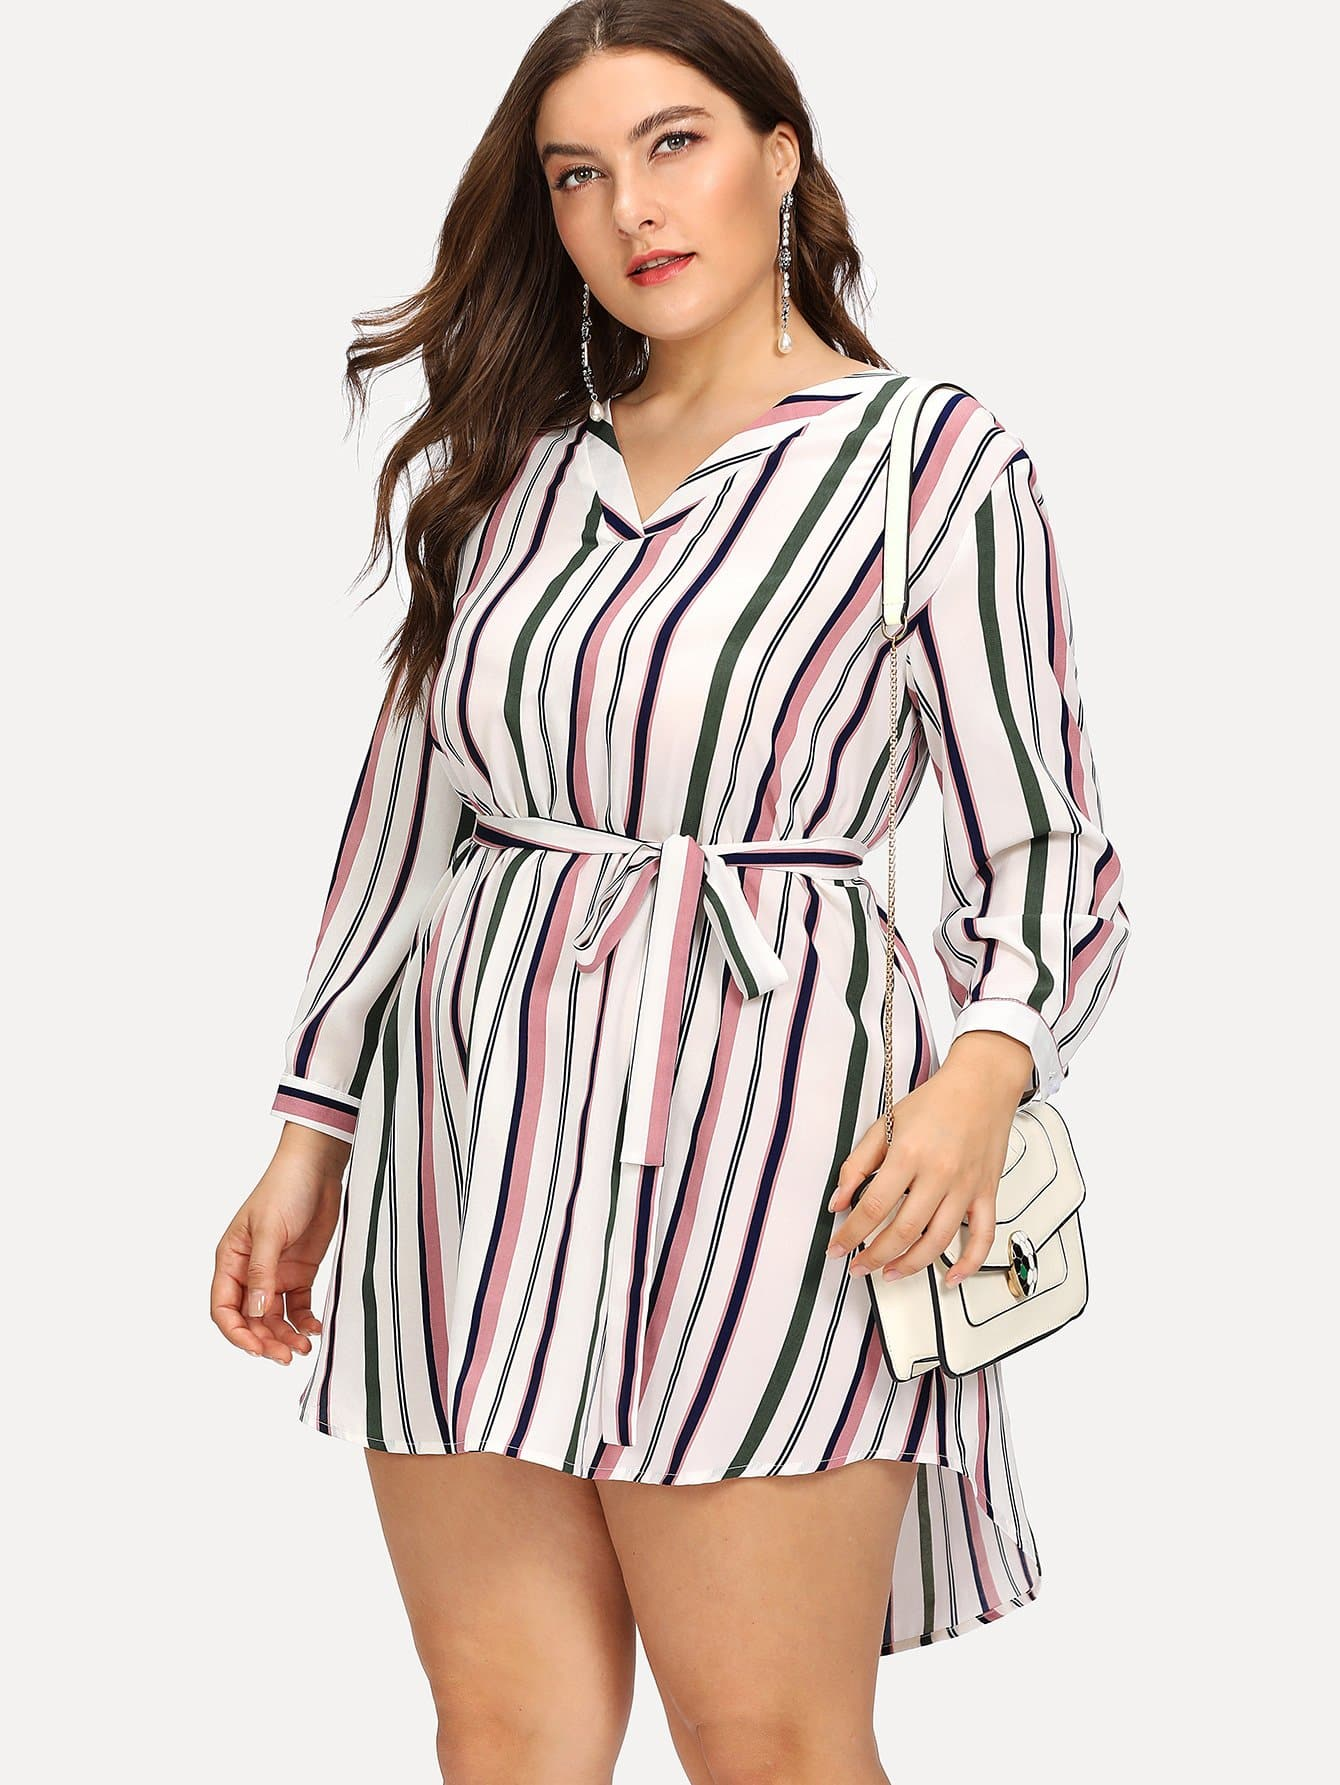 Vertical Striped Step Hem Dress dio d arte подвесная люстра dio d arte sorrento e 1 1 8 200 g